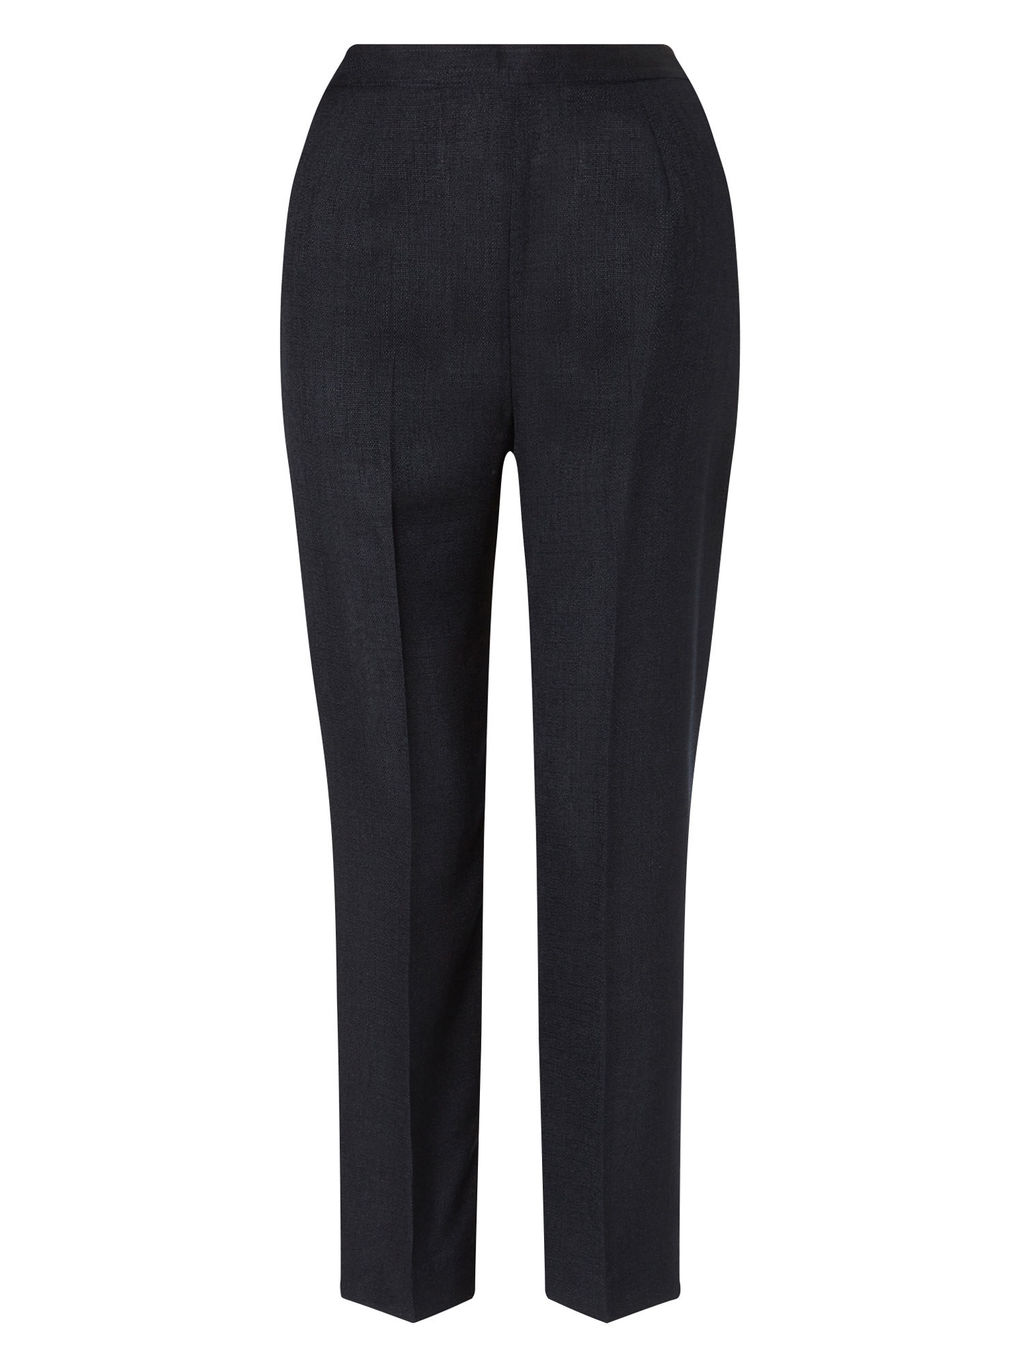 Basket Weave Trouser - pattern: plain; style: peg leg; waist: high rise; predominant colour: navy; length: ankle length; fibres: cotton - mix; fit: tapered; pattern type: fabric; texture group: woven light midweight; occasions: creative work; season: s/s 2016; wardrobe: basic